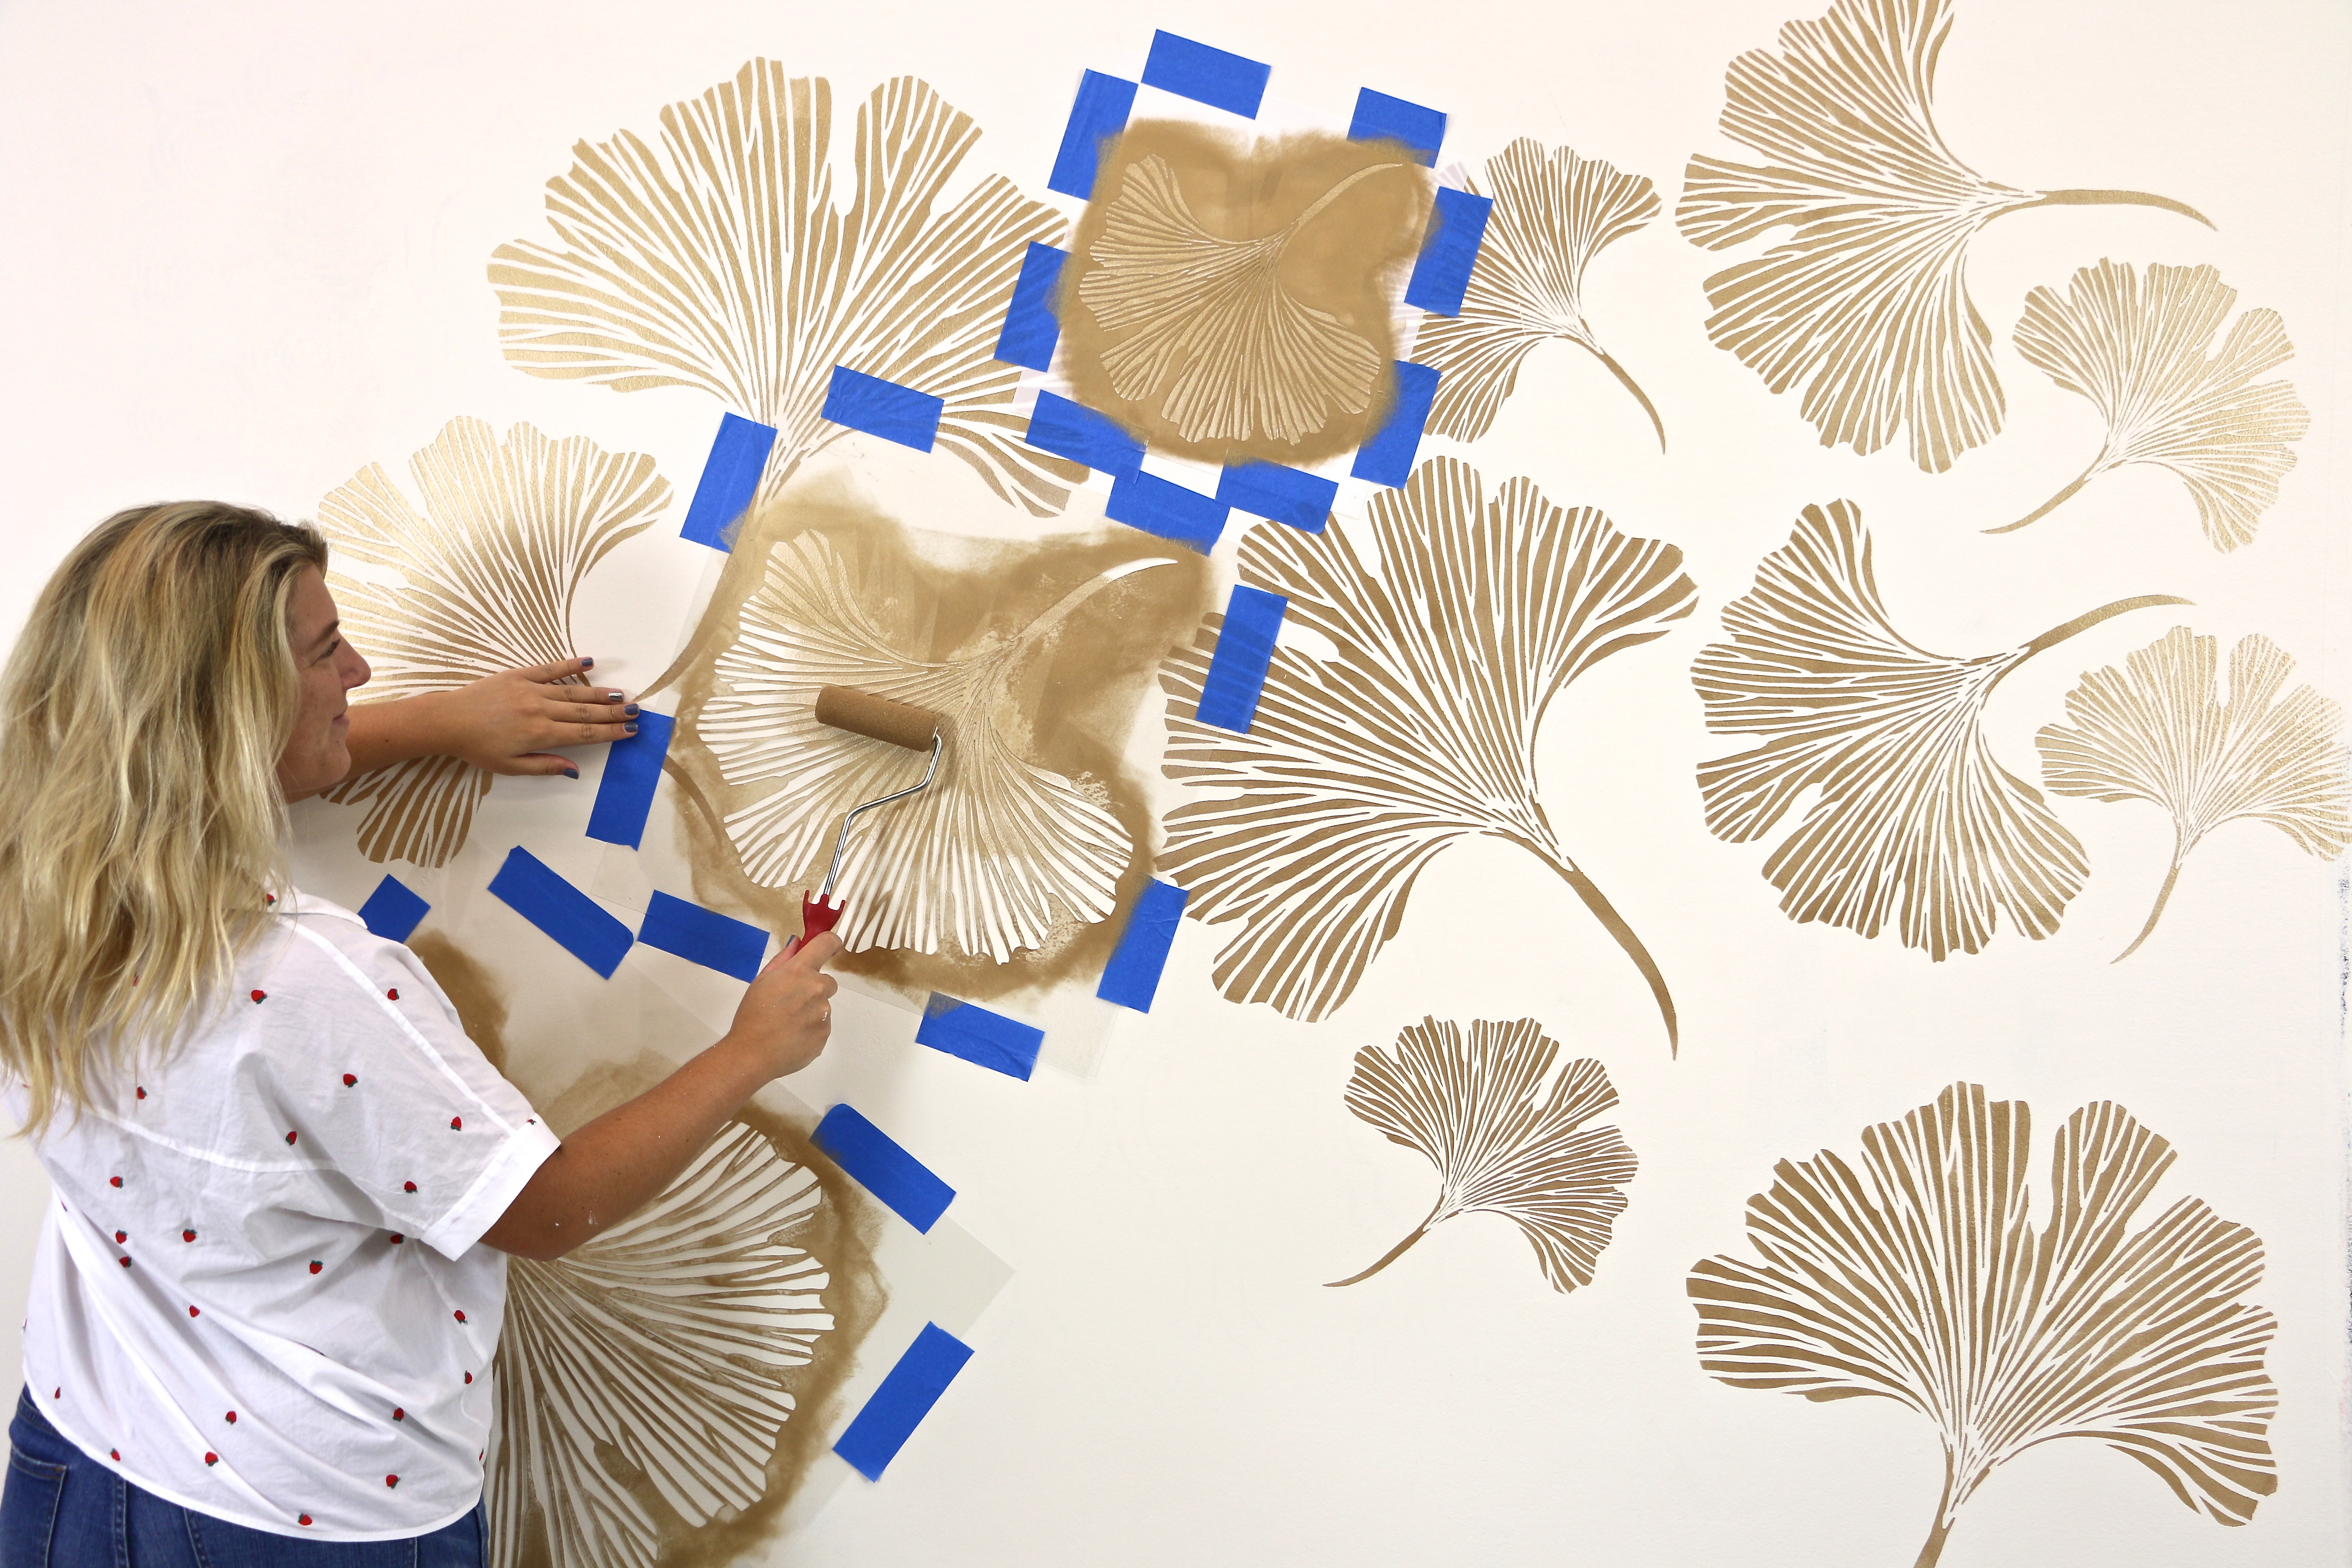 Paint the wall stencil with metallic paint